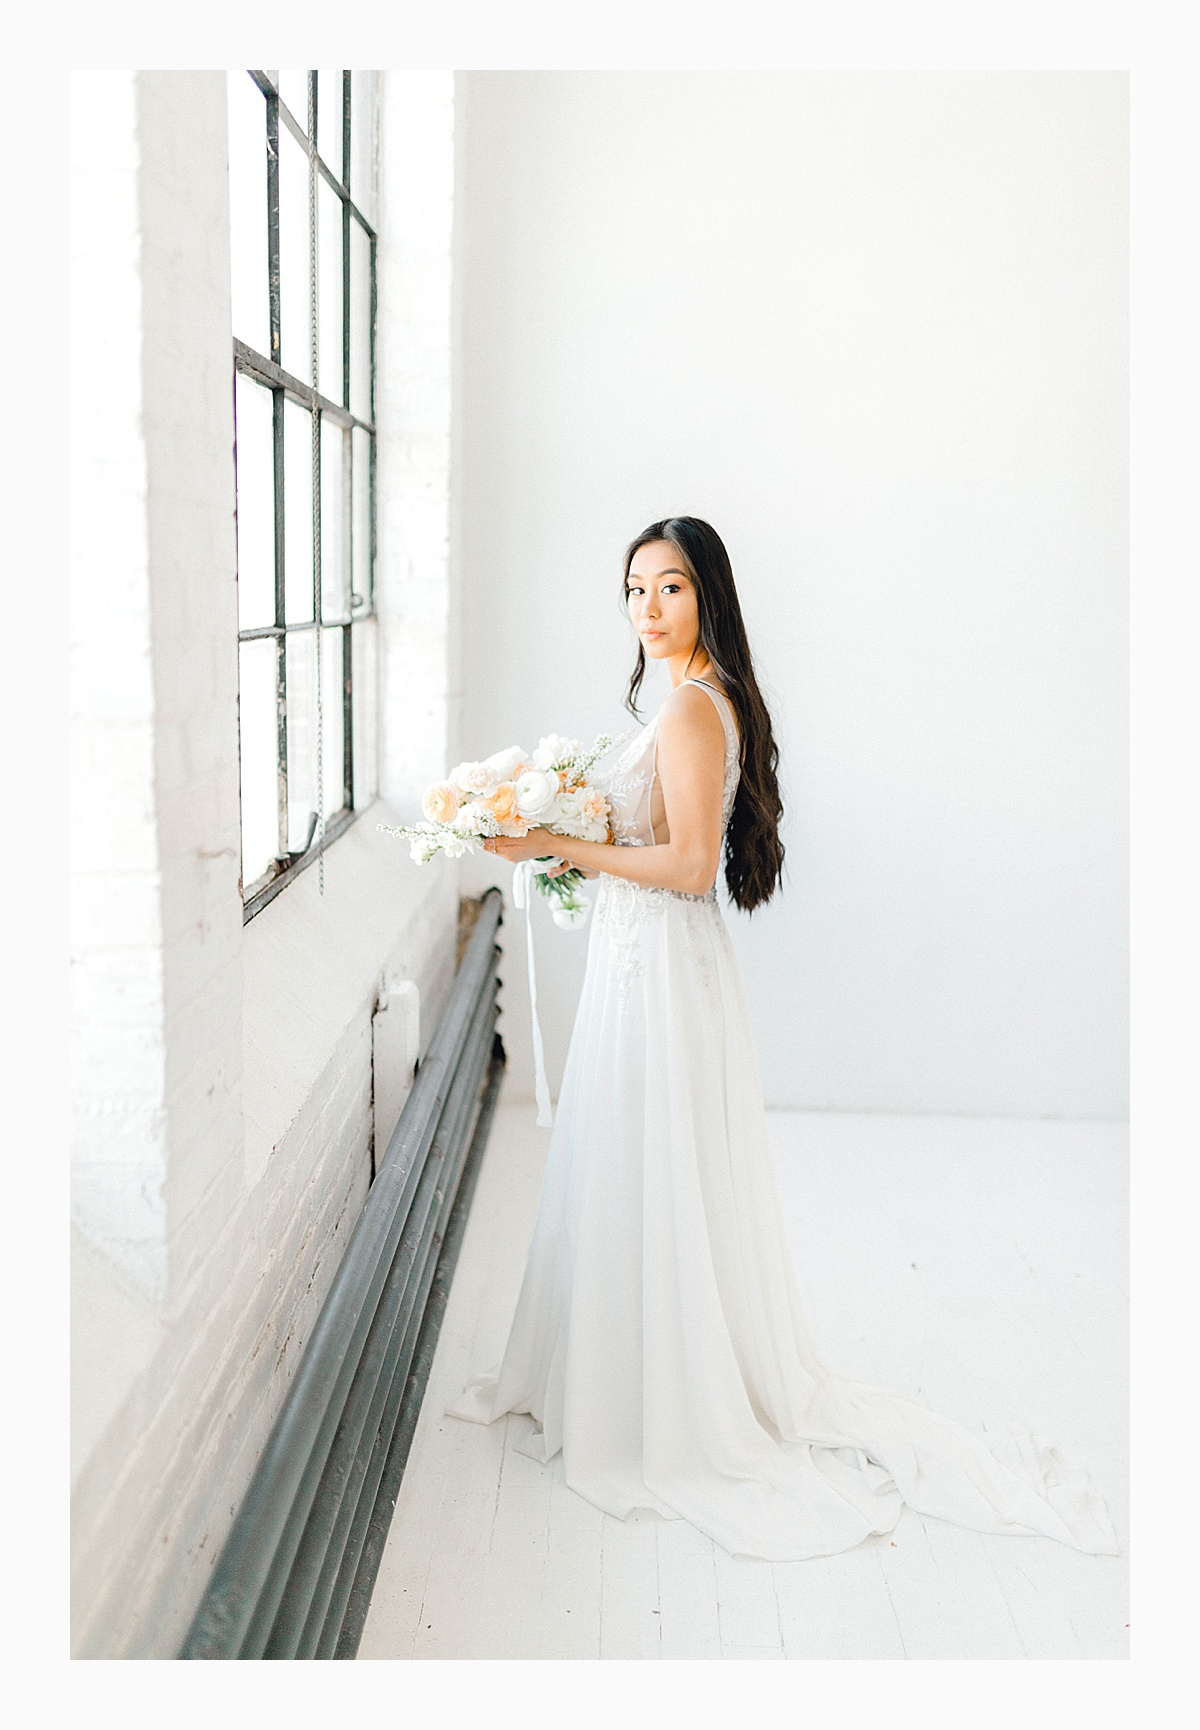 The Bemis Building in downtown Seattle is one of my favorite places to use for photo shoots!  This styled bridal shoot with touches of peach and white was dreamy.  #emmarosecompany #kindredpresets #seattlebride_0025.jpg